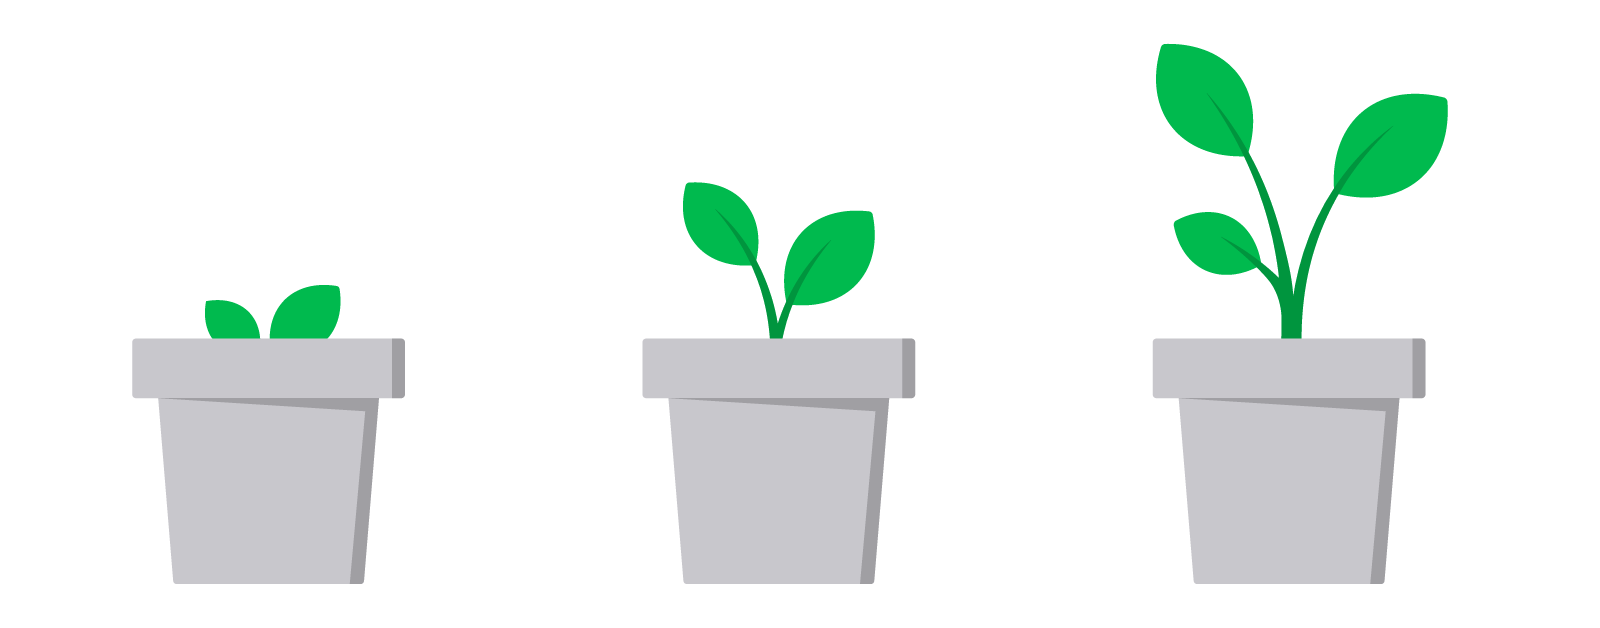 Illustration of a plant growing